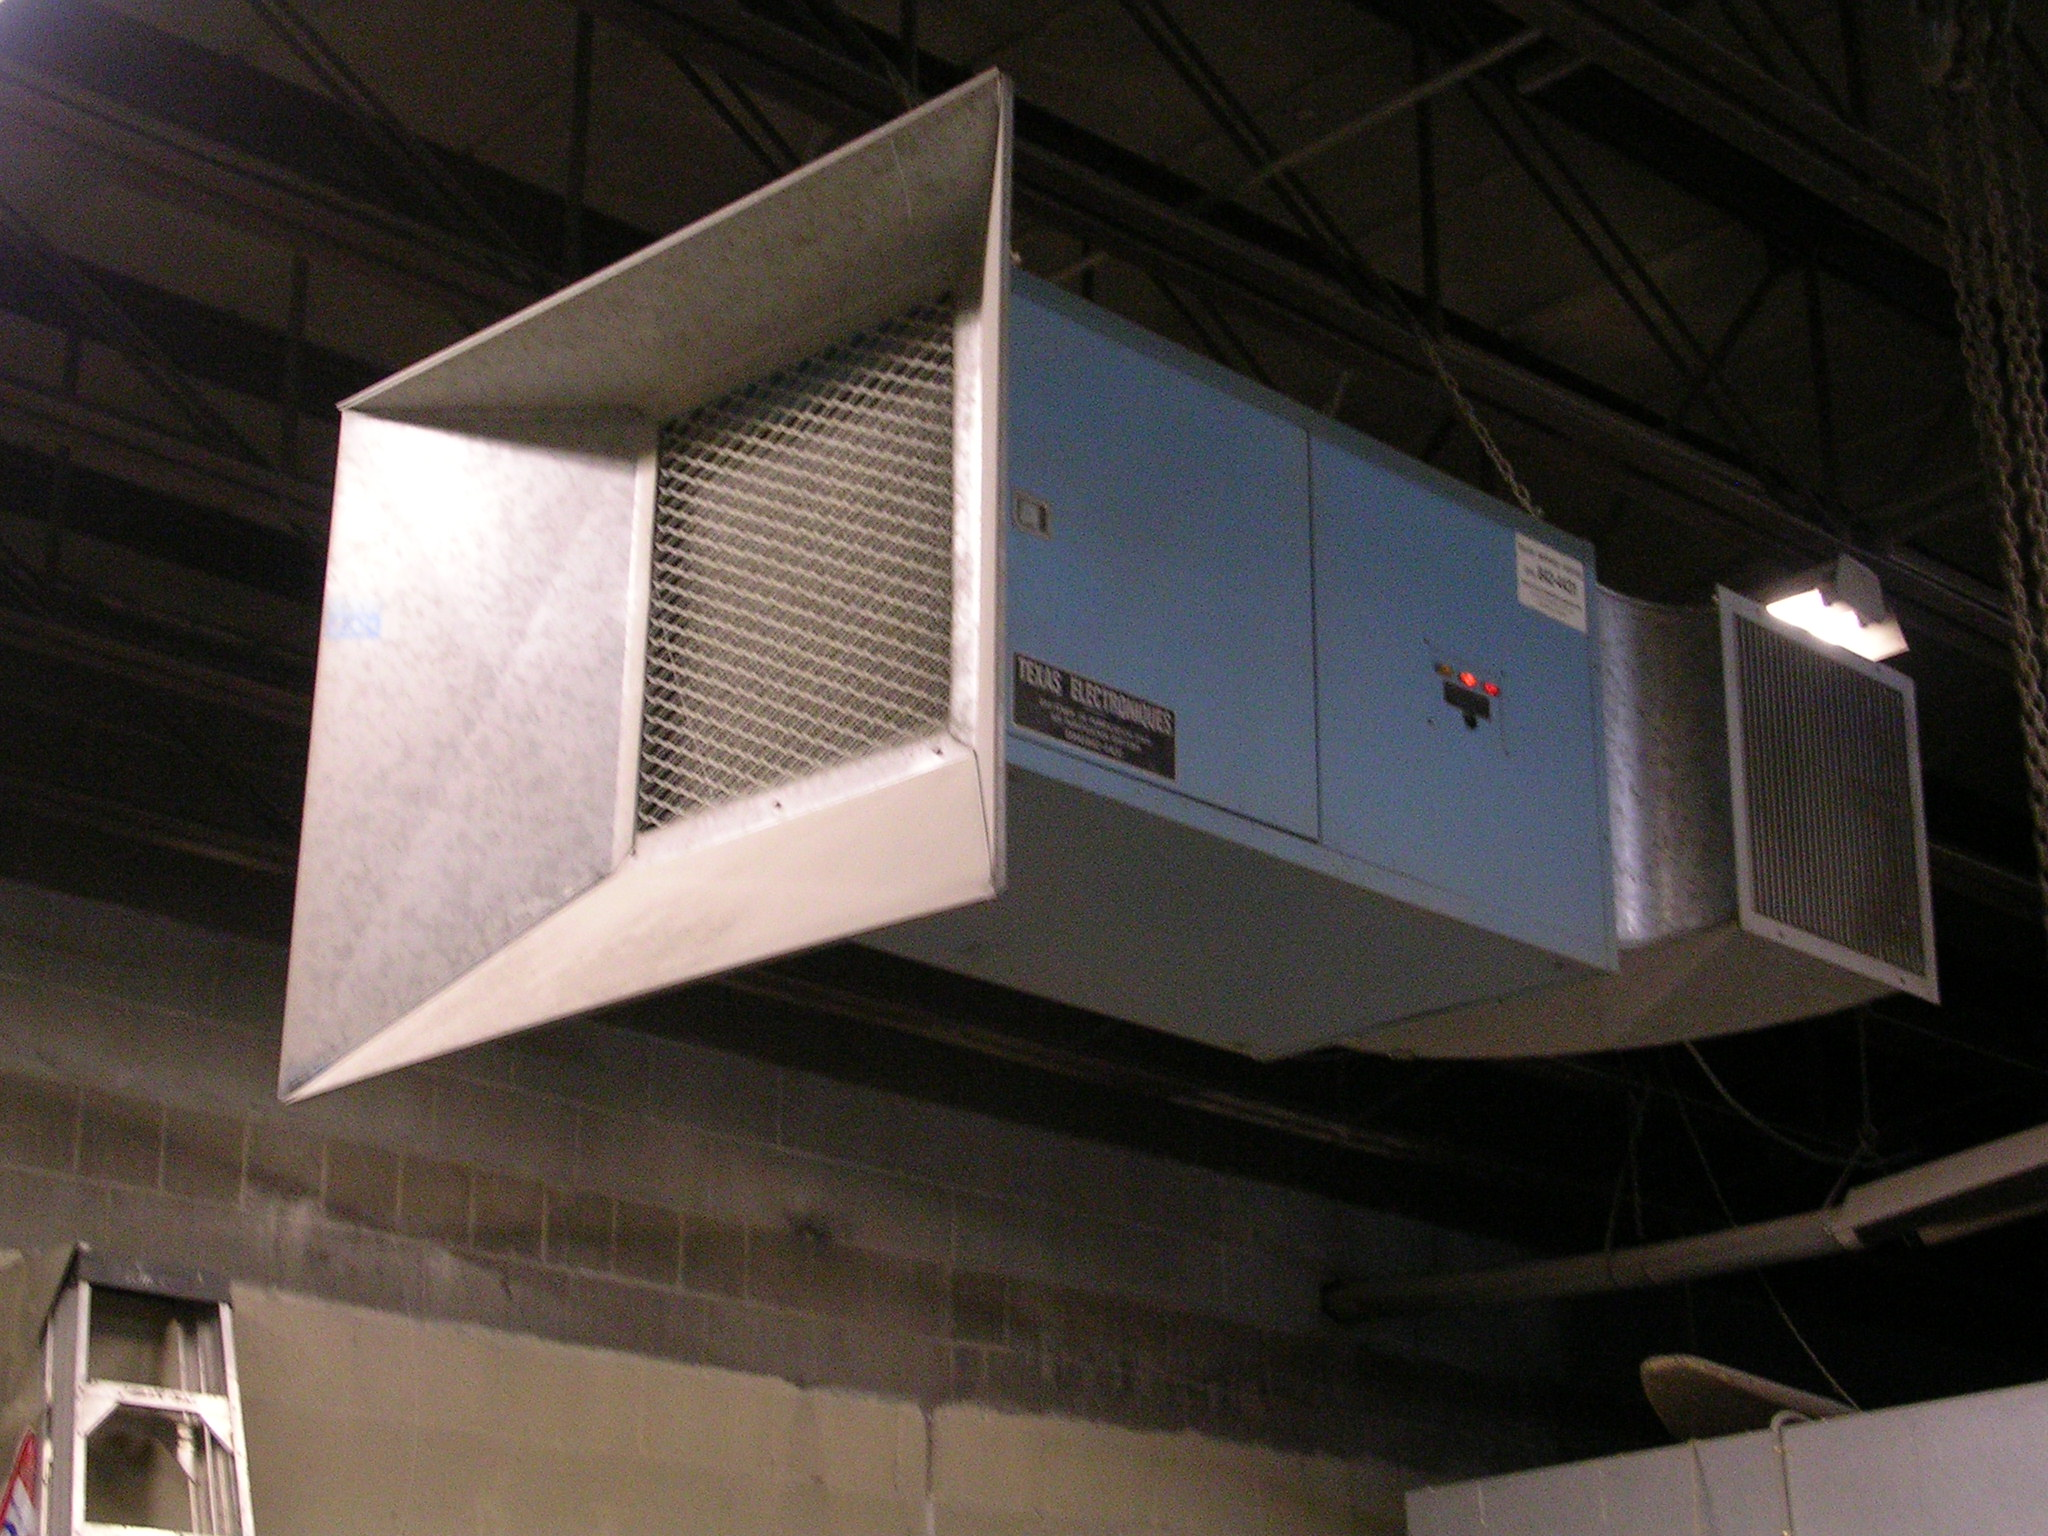 INDUSTRIAL AIR CLEANER FOR THE CONTROL OF AIRBORNE DUST #854F46